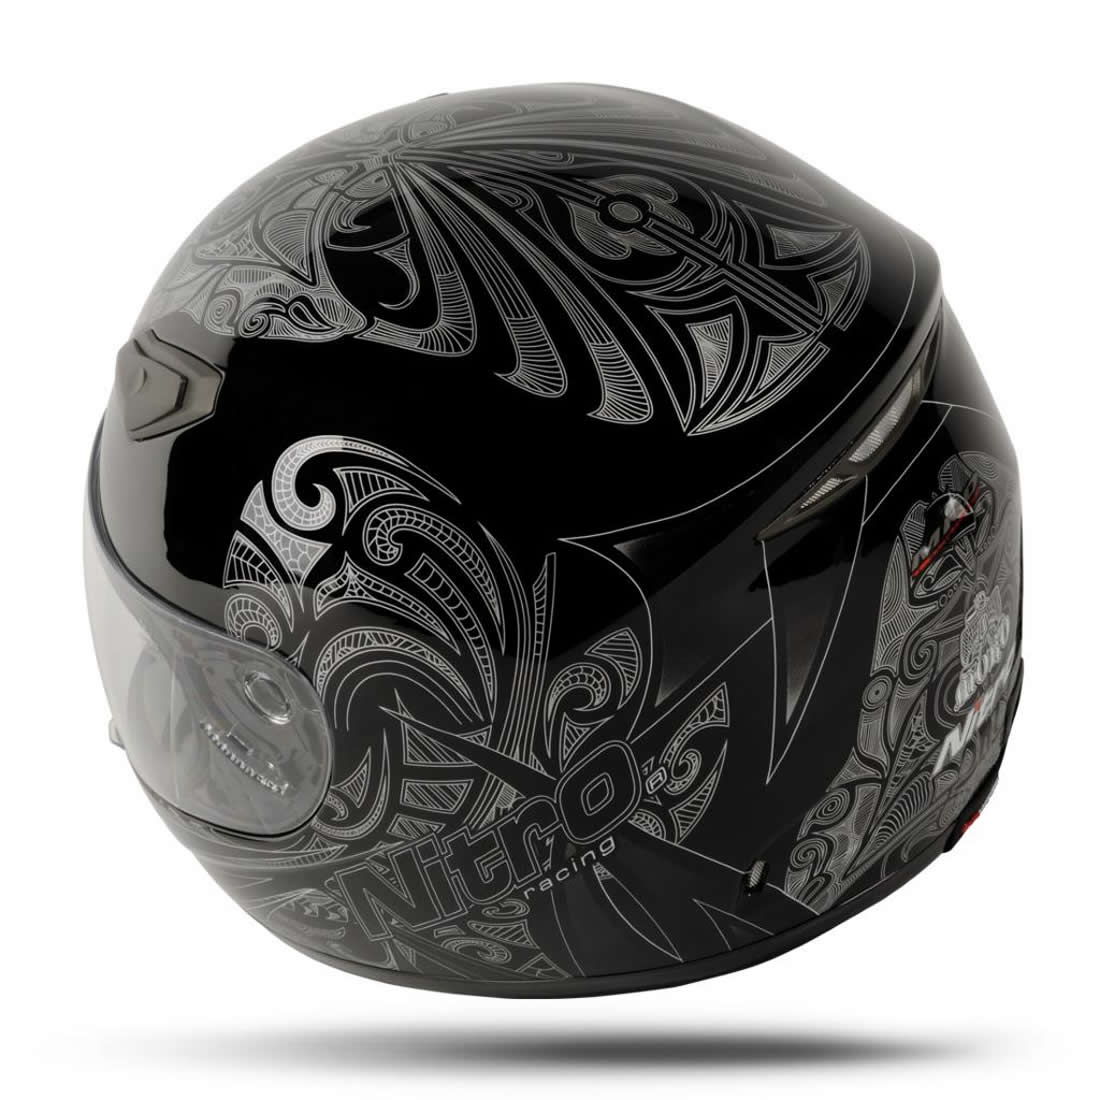 NITRO MOKO LUXE TRIBAL GRAPHIC TATTOO FULL FACE MOTORCYCLE  : 8951 Nitro Moko Luxe Motorcycle Helmet Black 1100 3 <strong>Vinyl Decals for</strong> Motorcycles from www.ebay.com size 1100 x 1100 jpeg 123kB